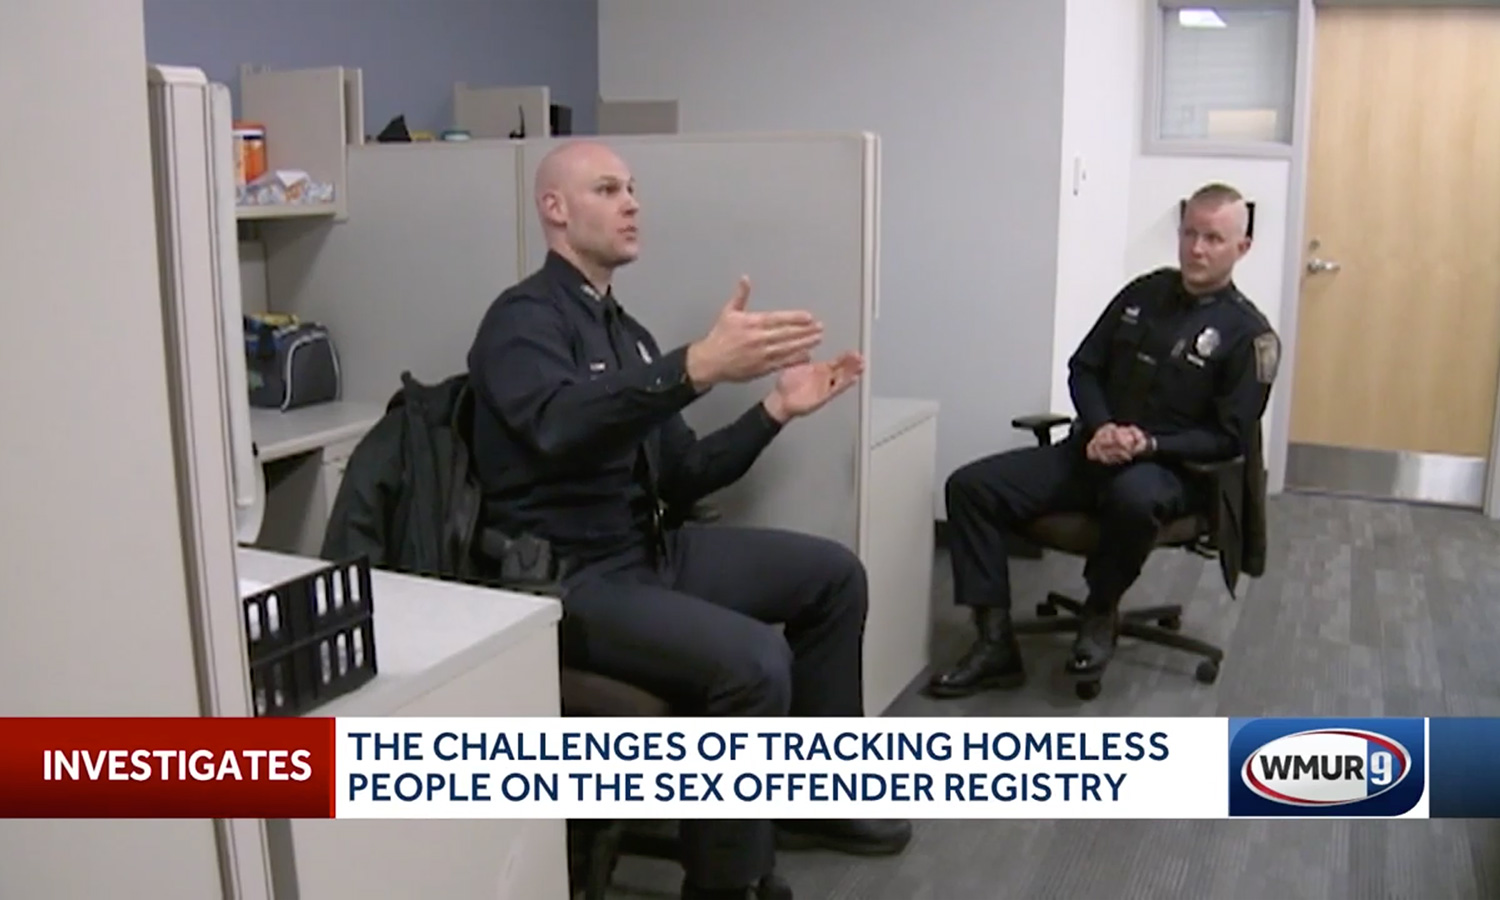 Law enforcement struggles to track homeless people on sex offender registry